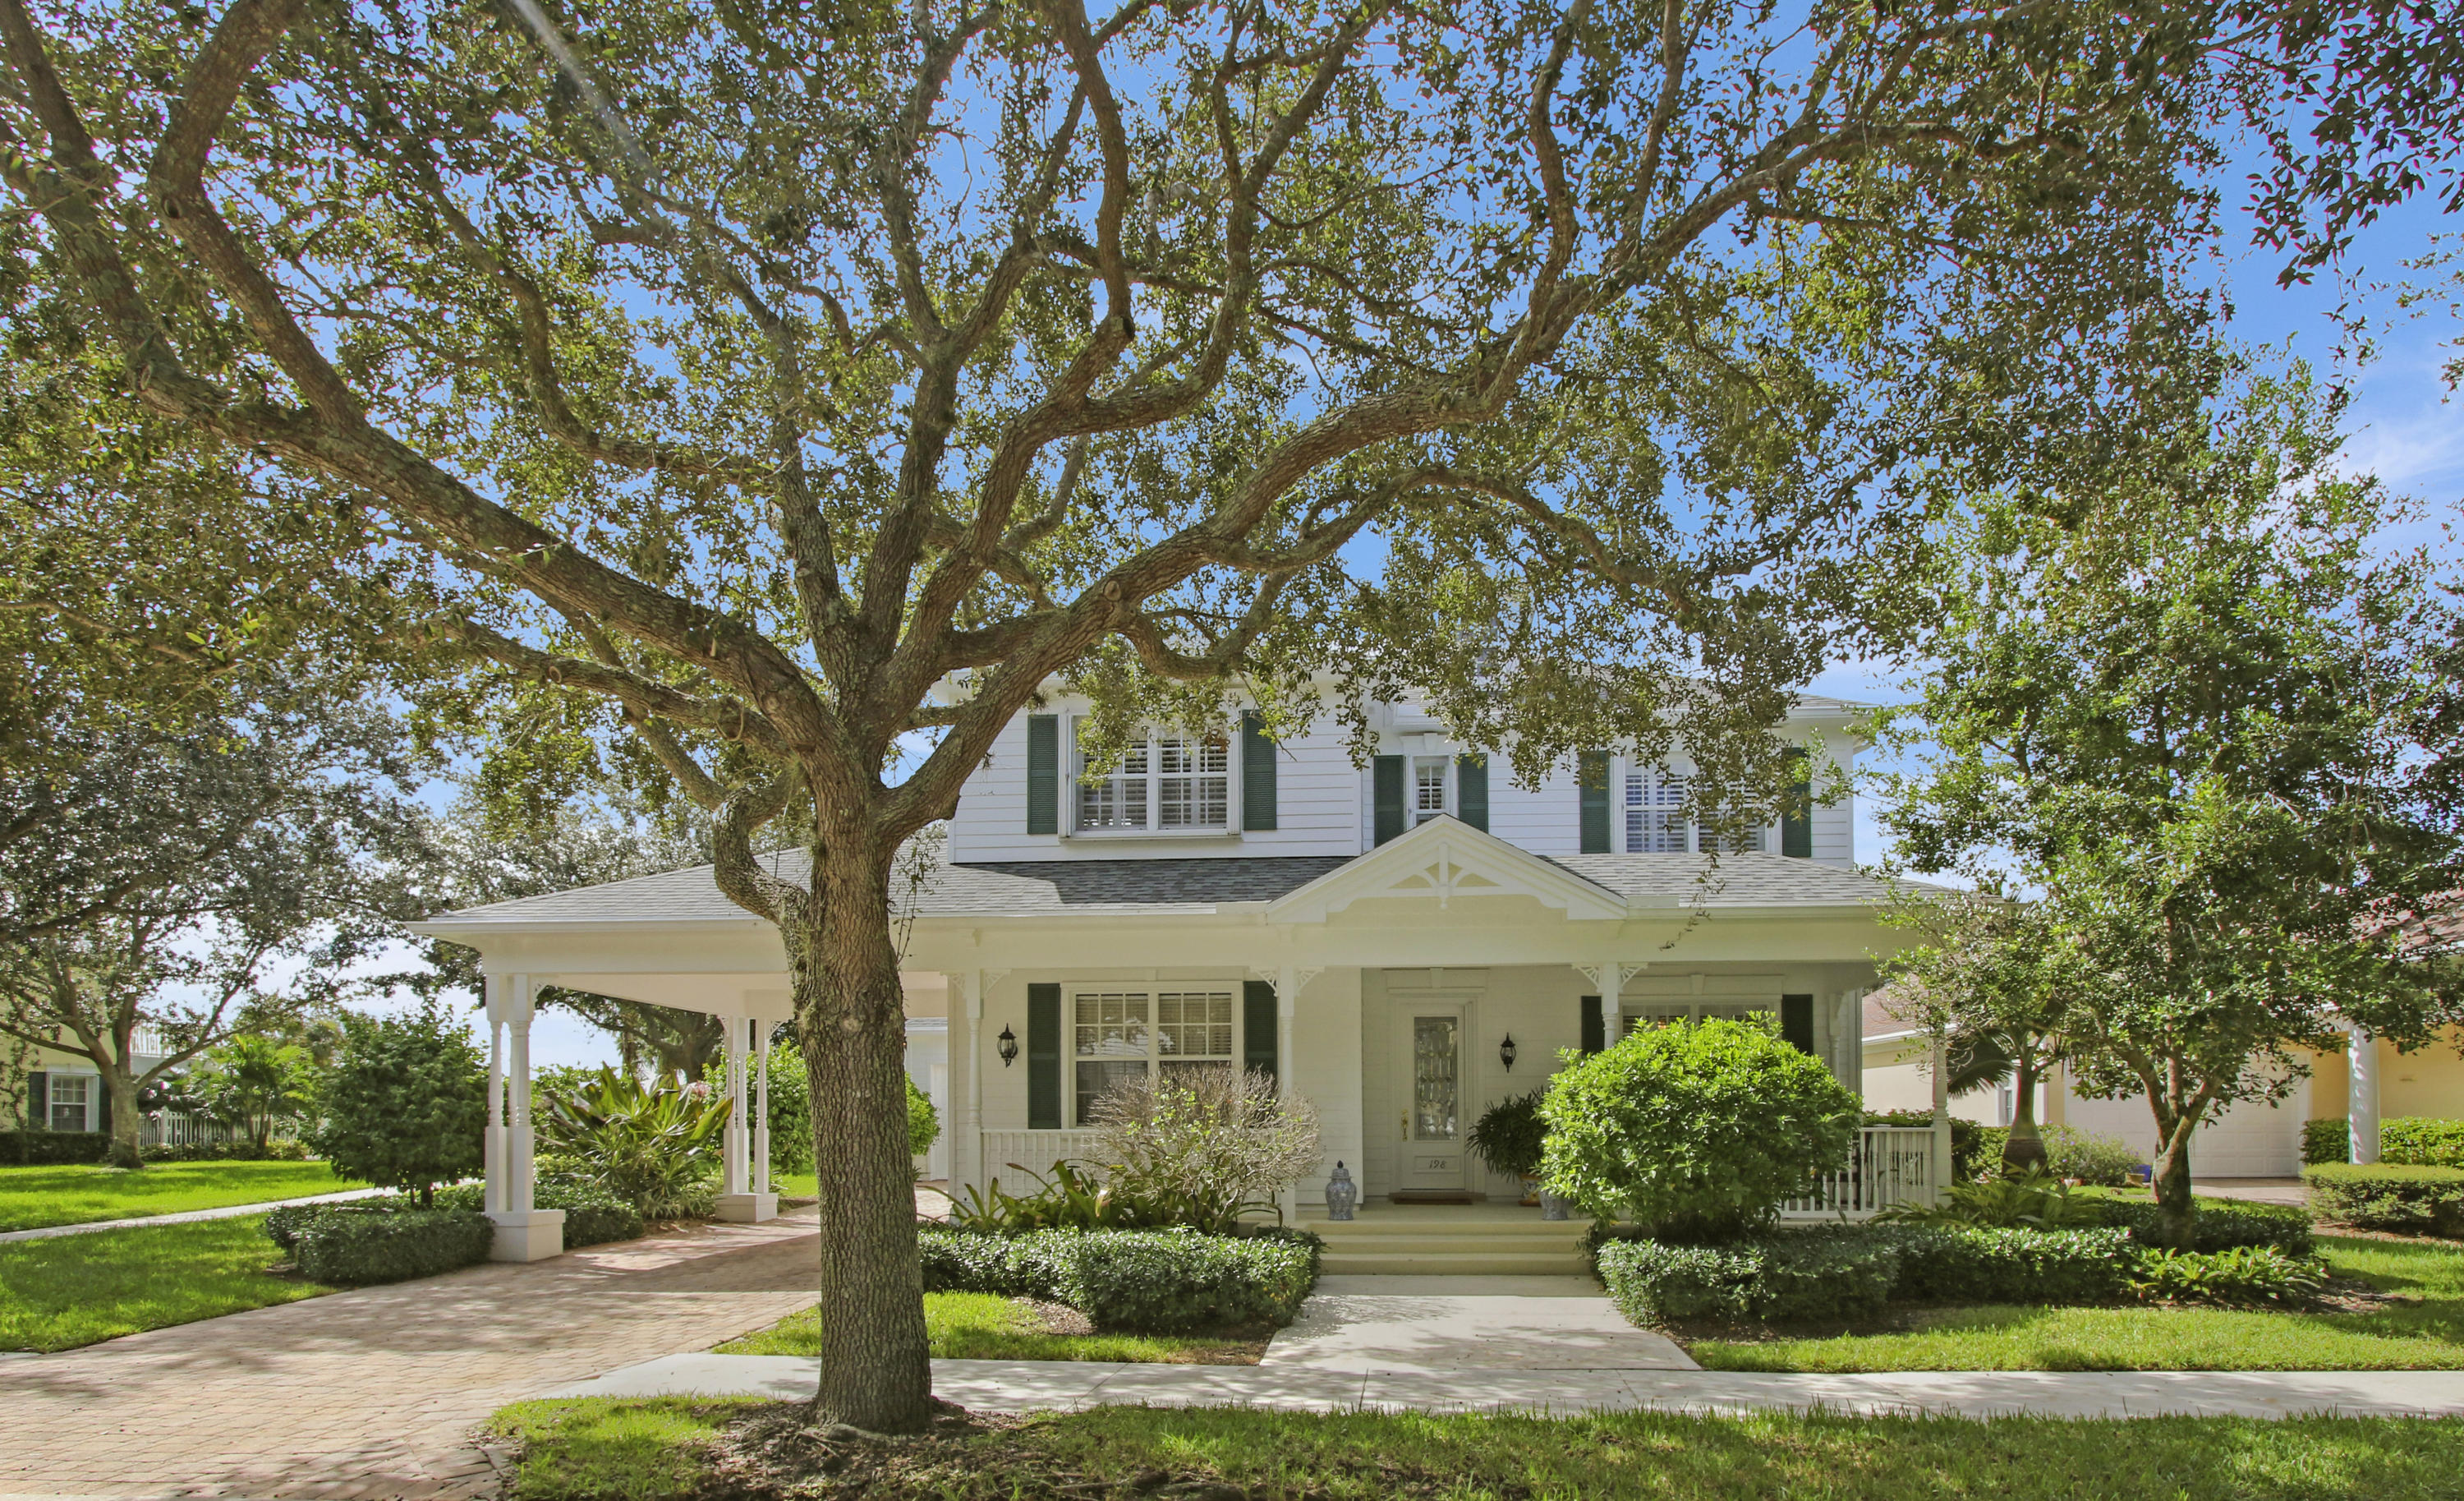 New Home for sale at 198 Barbados Drive in Jupiter